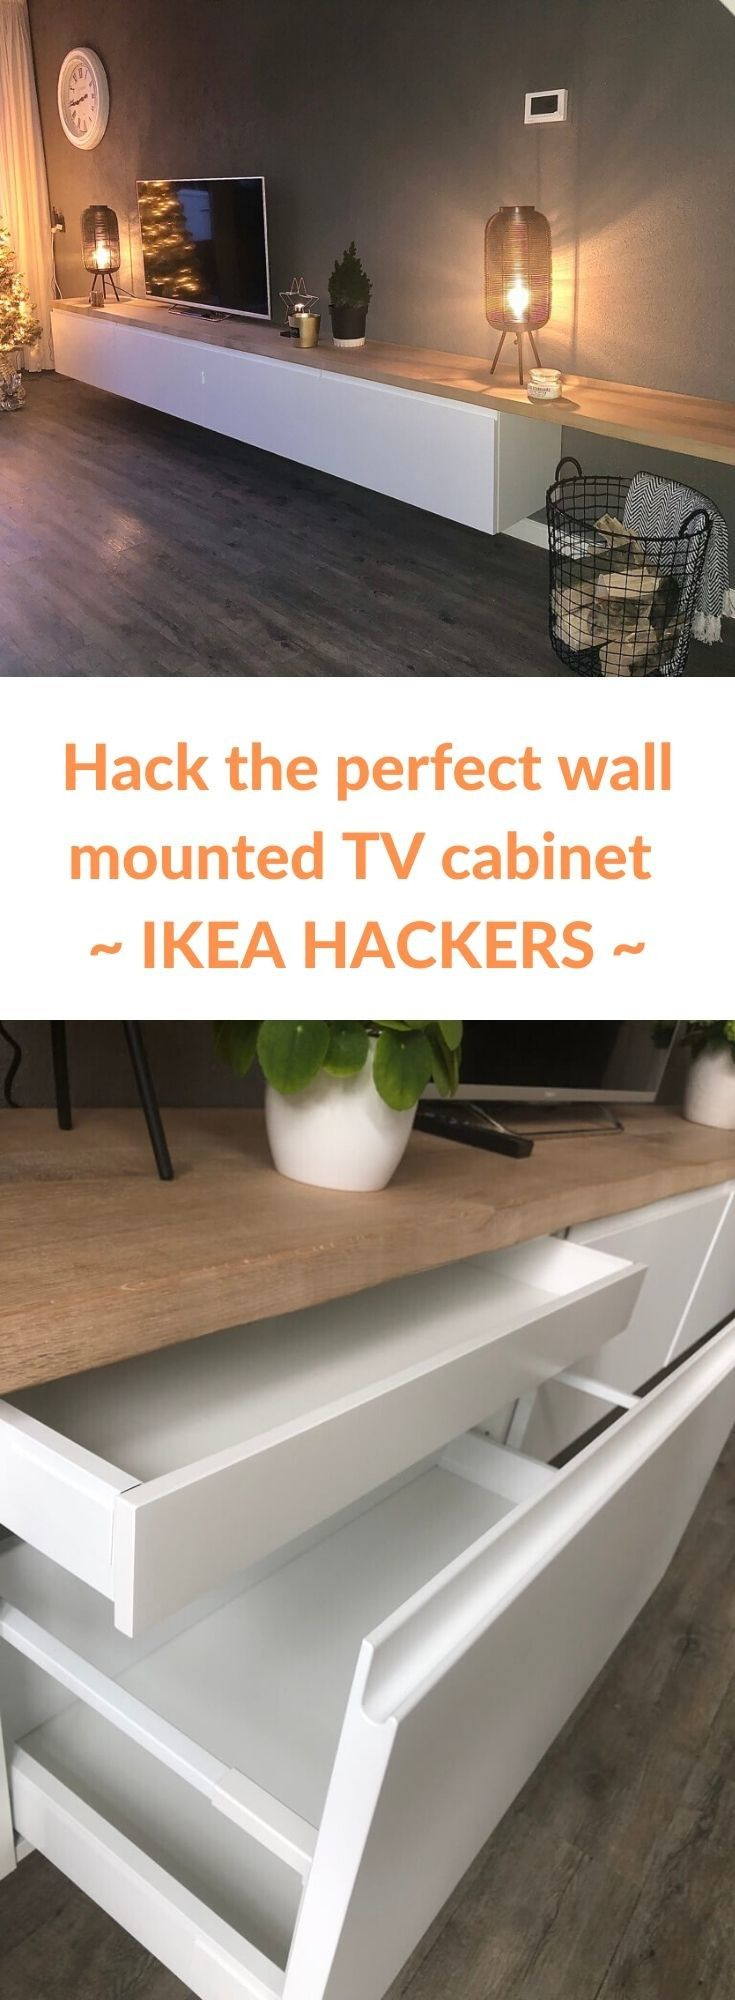 I cooked up a perfect wall mounted TV cabinet